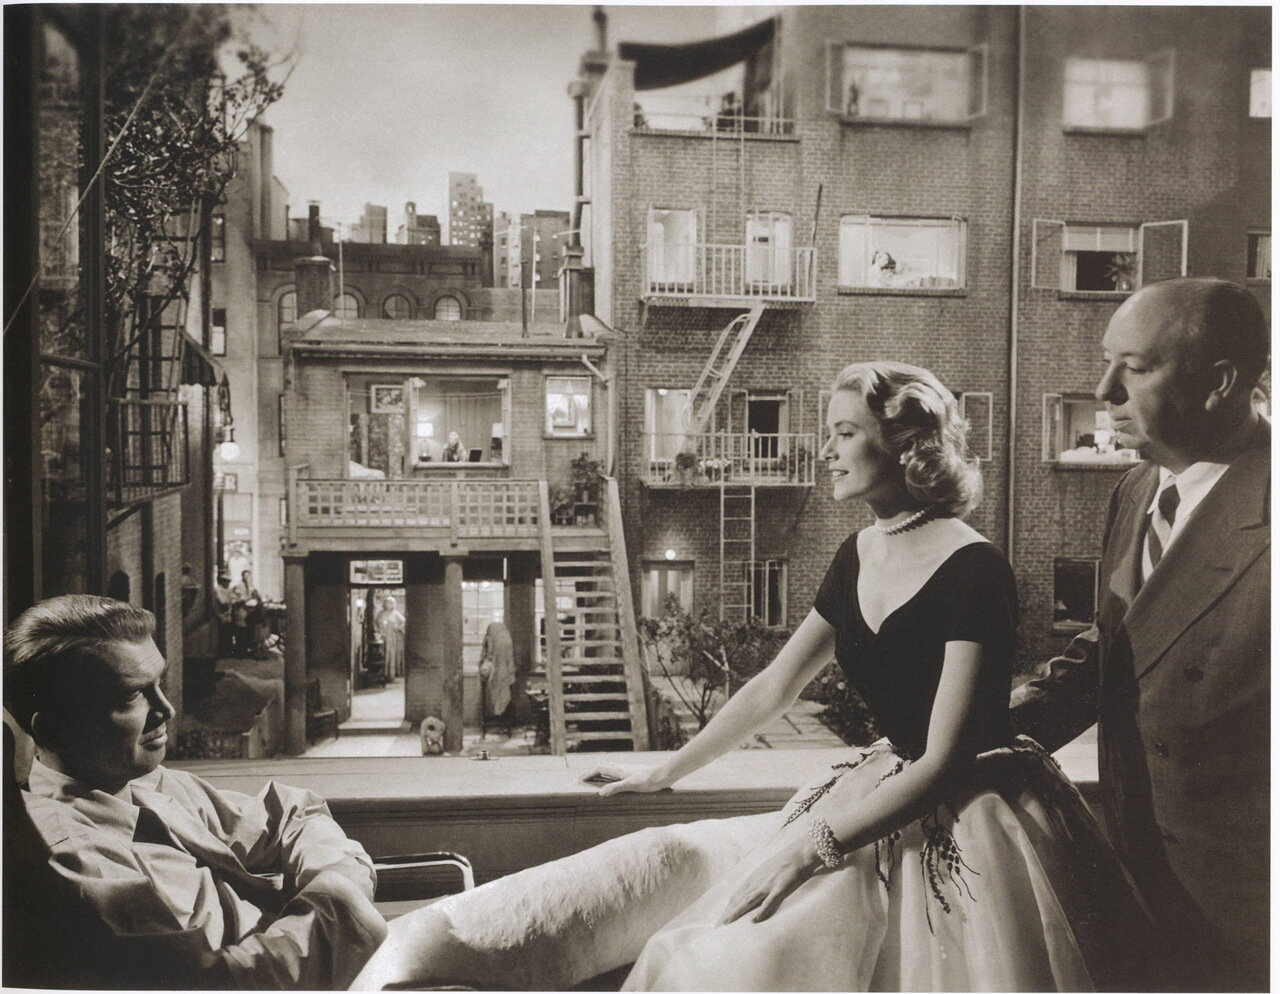 Jimmy Stewart,  Grace Kelly and Alfred Hitchcock pose for commercial poster Rear Window, a film directed by Alfred Hitchcock in 1954.